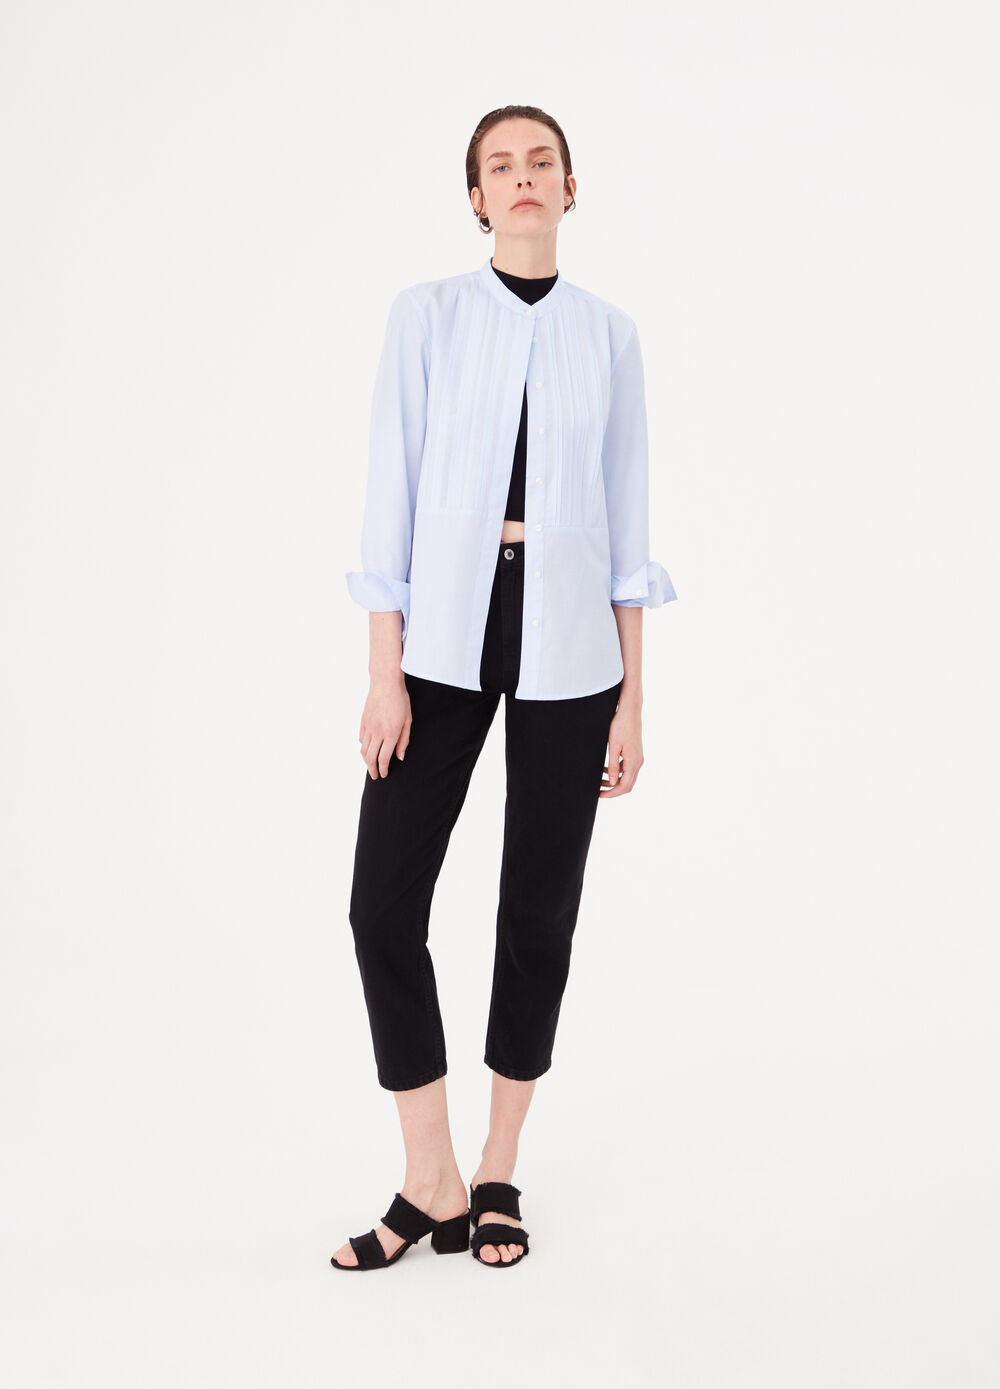 Cotton blend shirt with pleats on the front